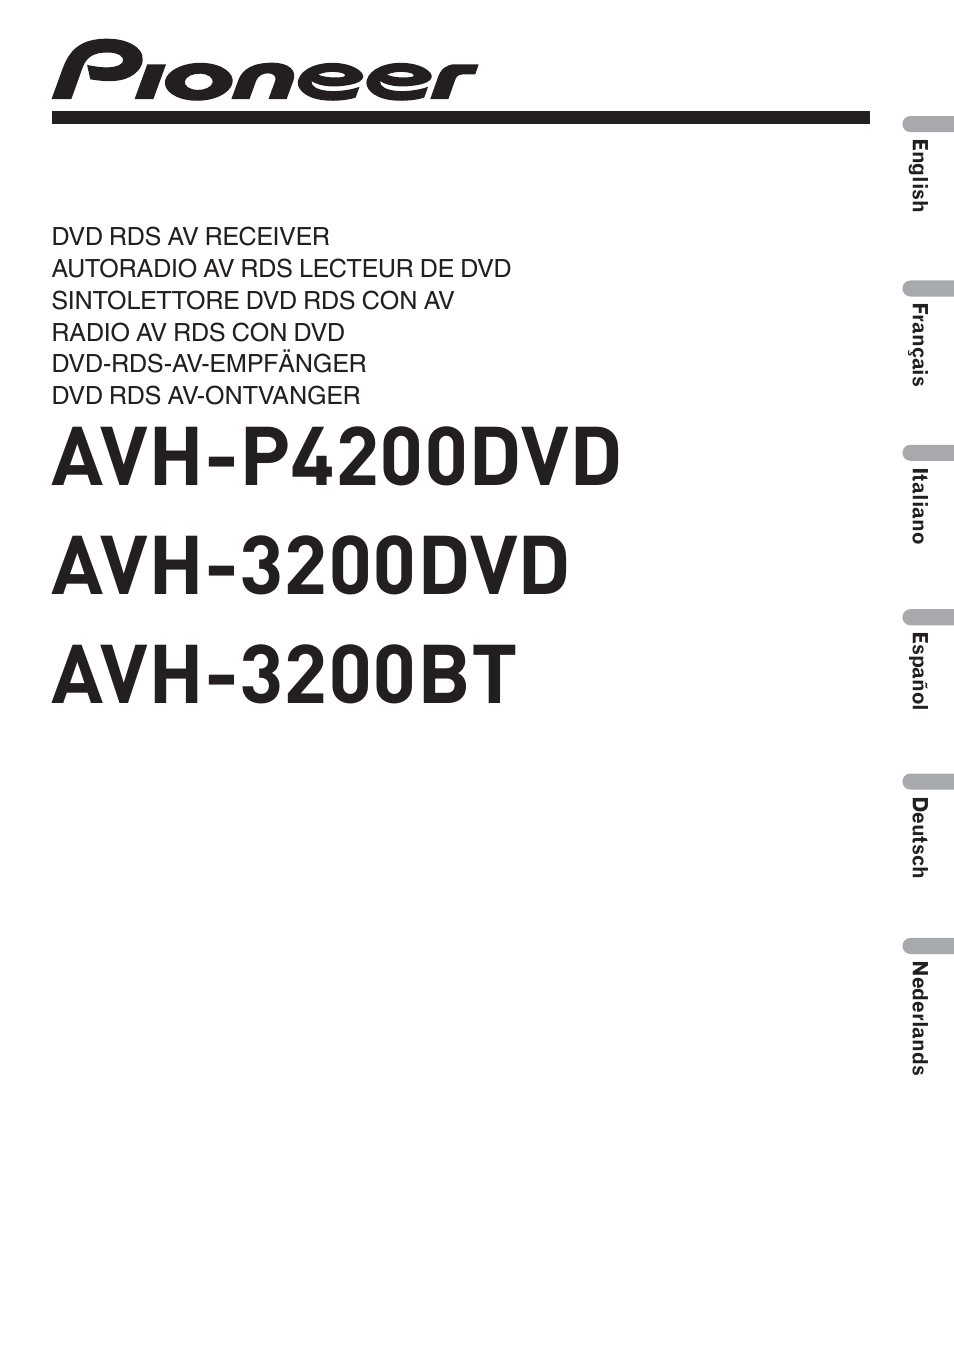 pioneer radio manual square d 30 50 pressure switch wiring diagram avh p4200dvd user 100 pages also for 3200bt 3200dvd